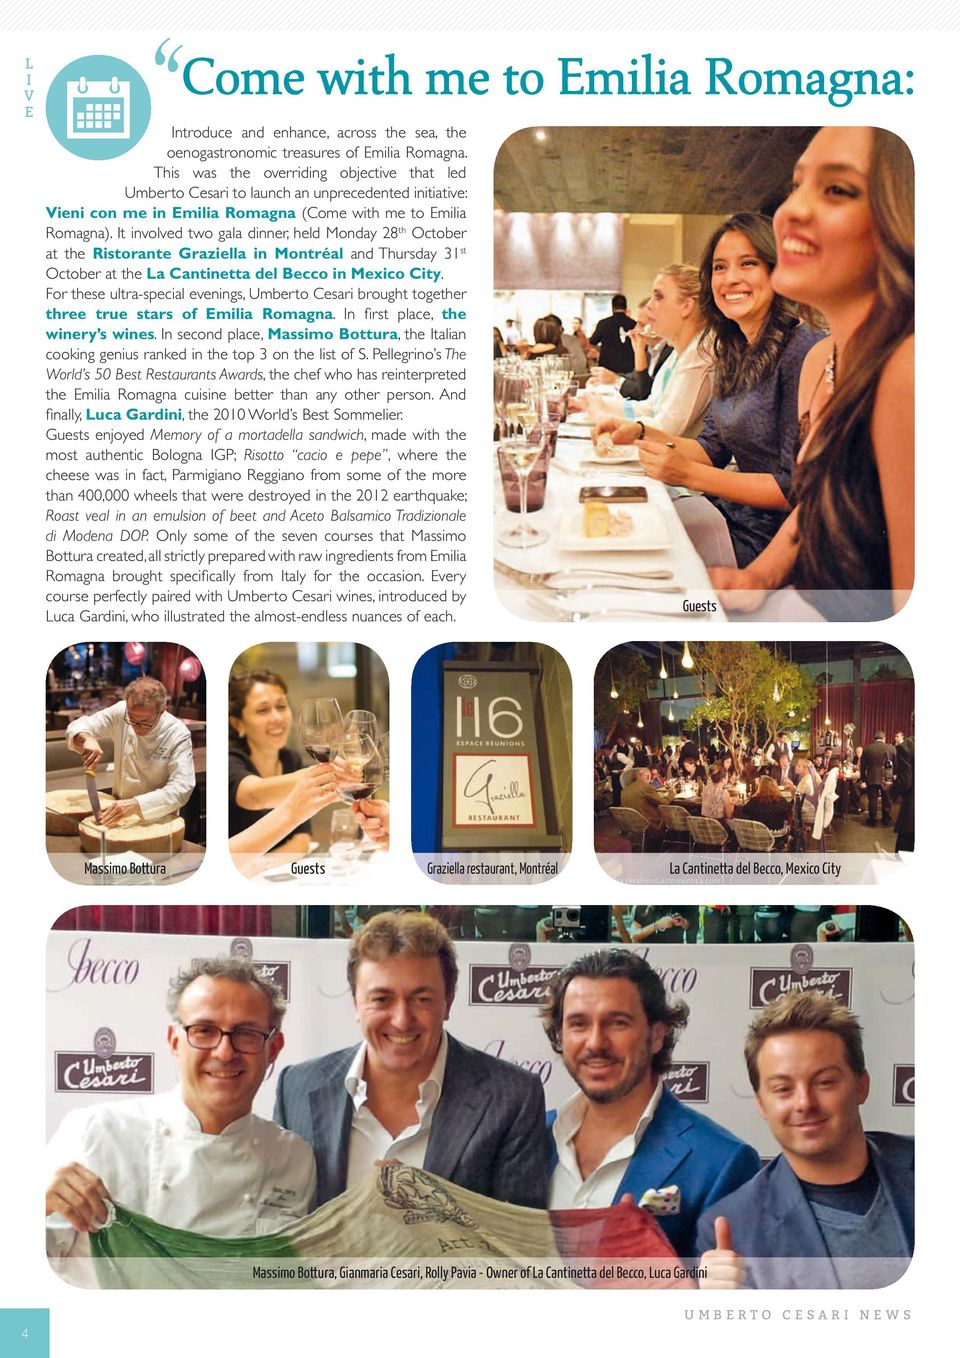 It involved two gala dinner, held Monday 28 th October at the Ristorante Graziella in Montréal and Thursday 31 st October at the La Cantinetta del Becco in Mexico City.